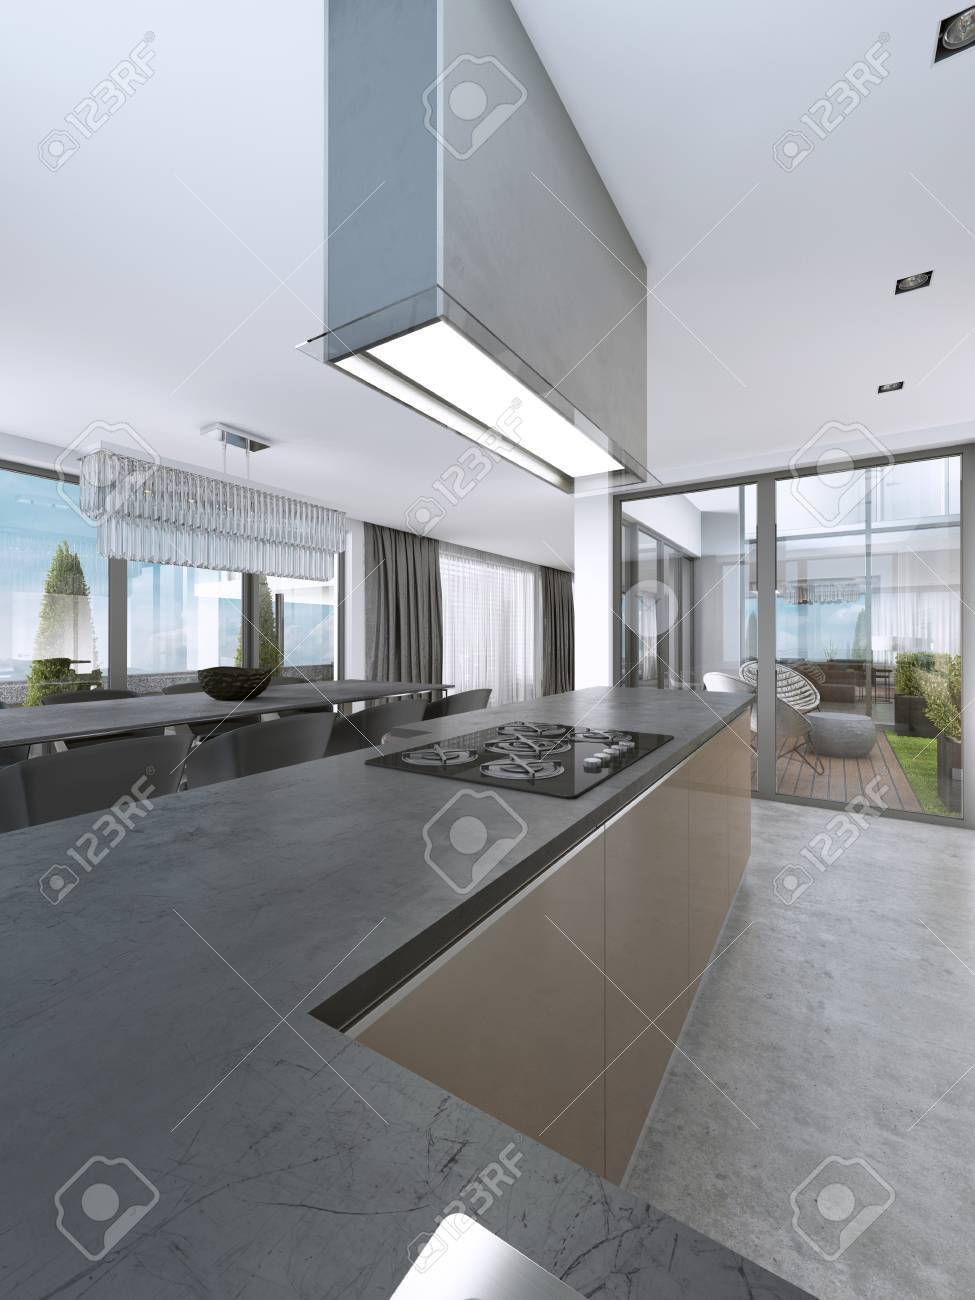 Contemporary Kitchen With Large Windows And Island With Bar Stools